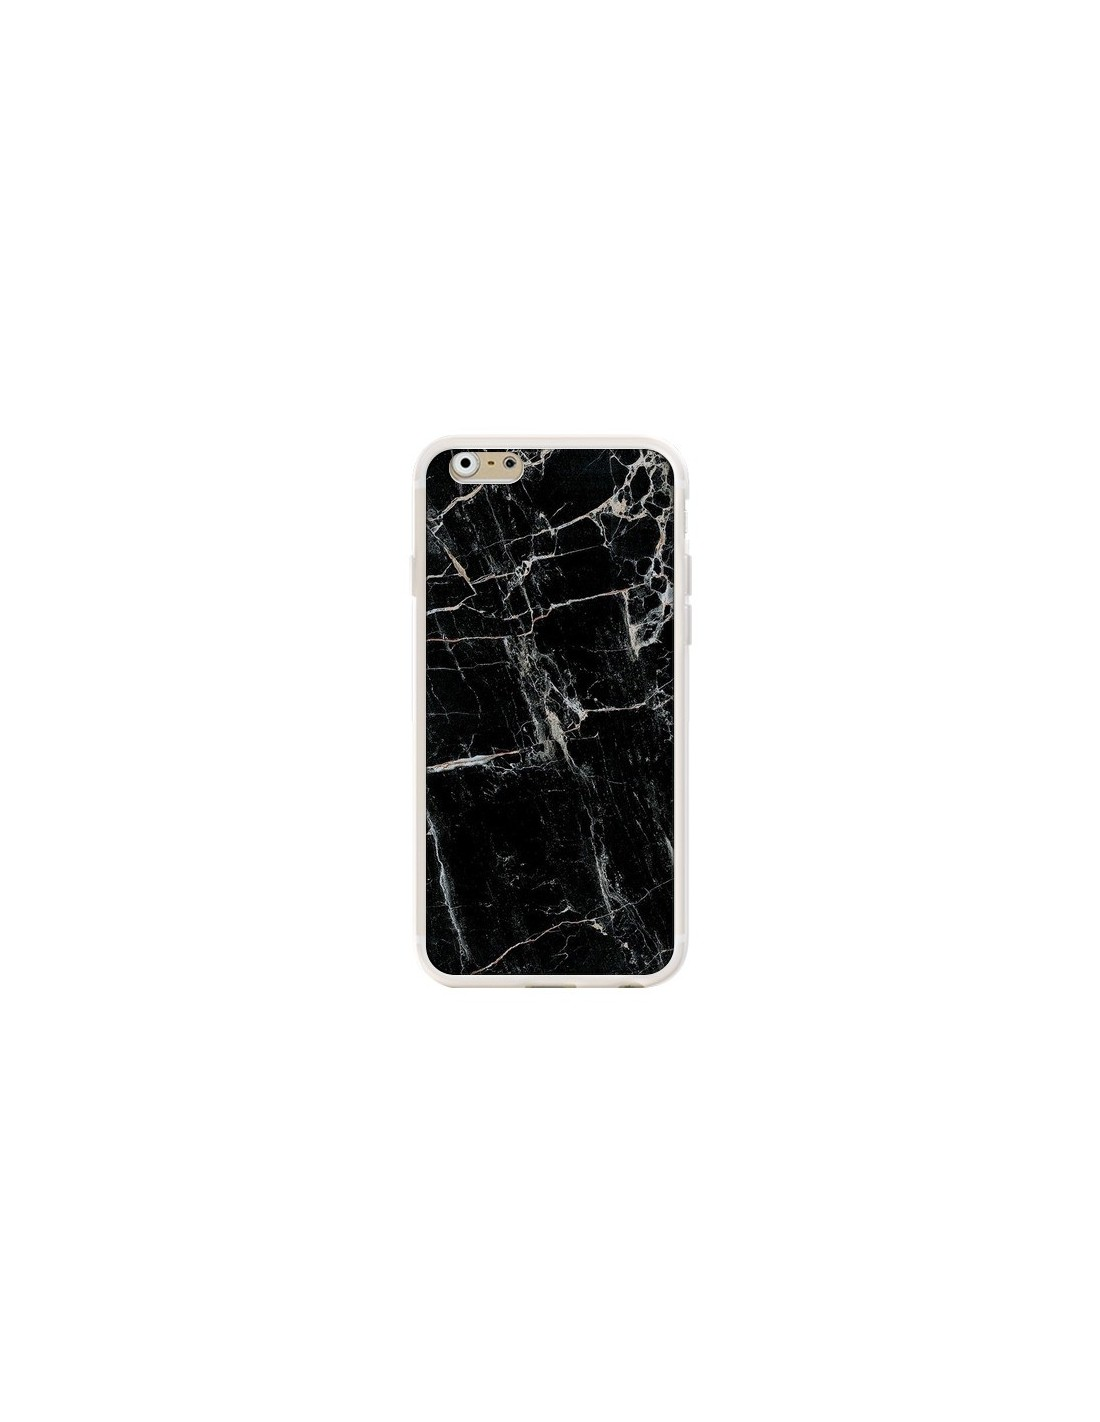 coque marbre marble noir black pour iphone 6 et 6s laetitia. Black Bedroom Furniture Sets. Home Design Ideas